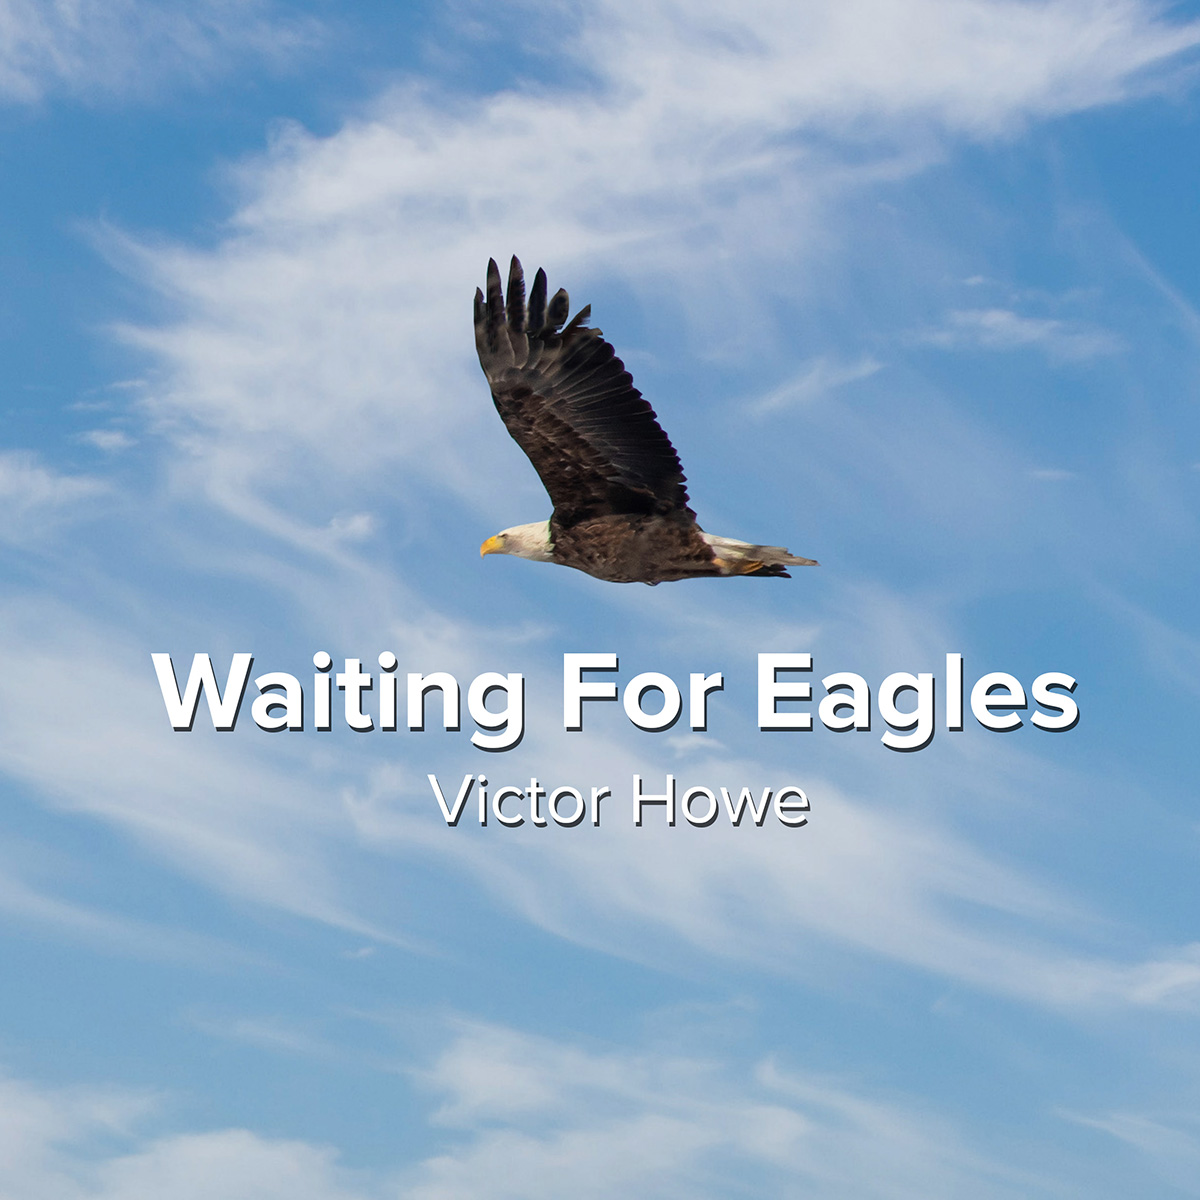 Waiting For Eagles